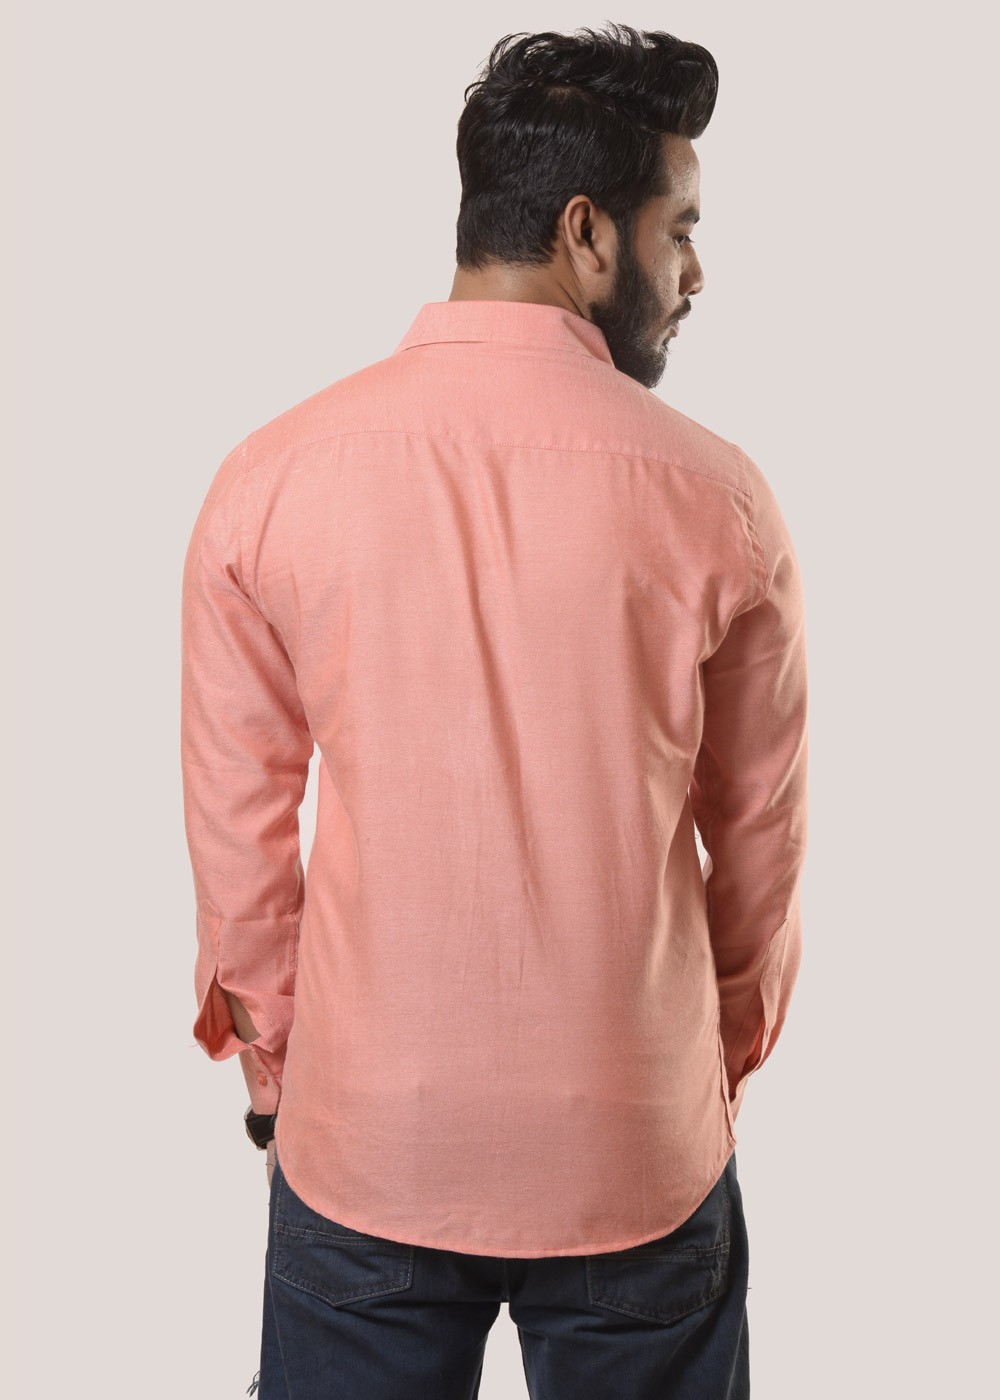 Slim fit red indian color pure cotton summer comfortable for Trim fit tuxedo shirt